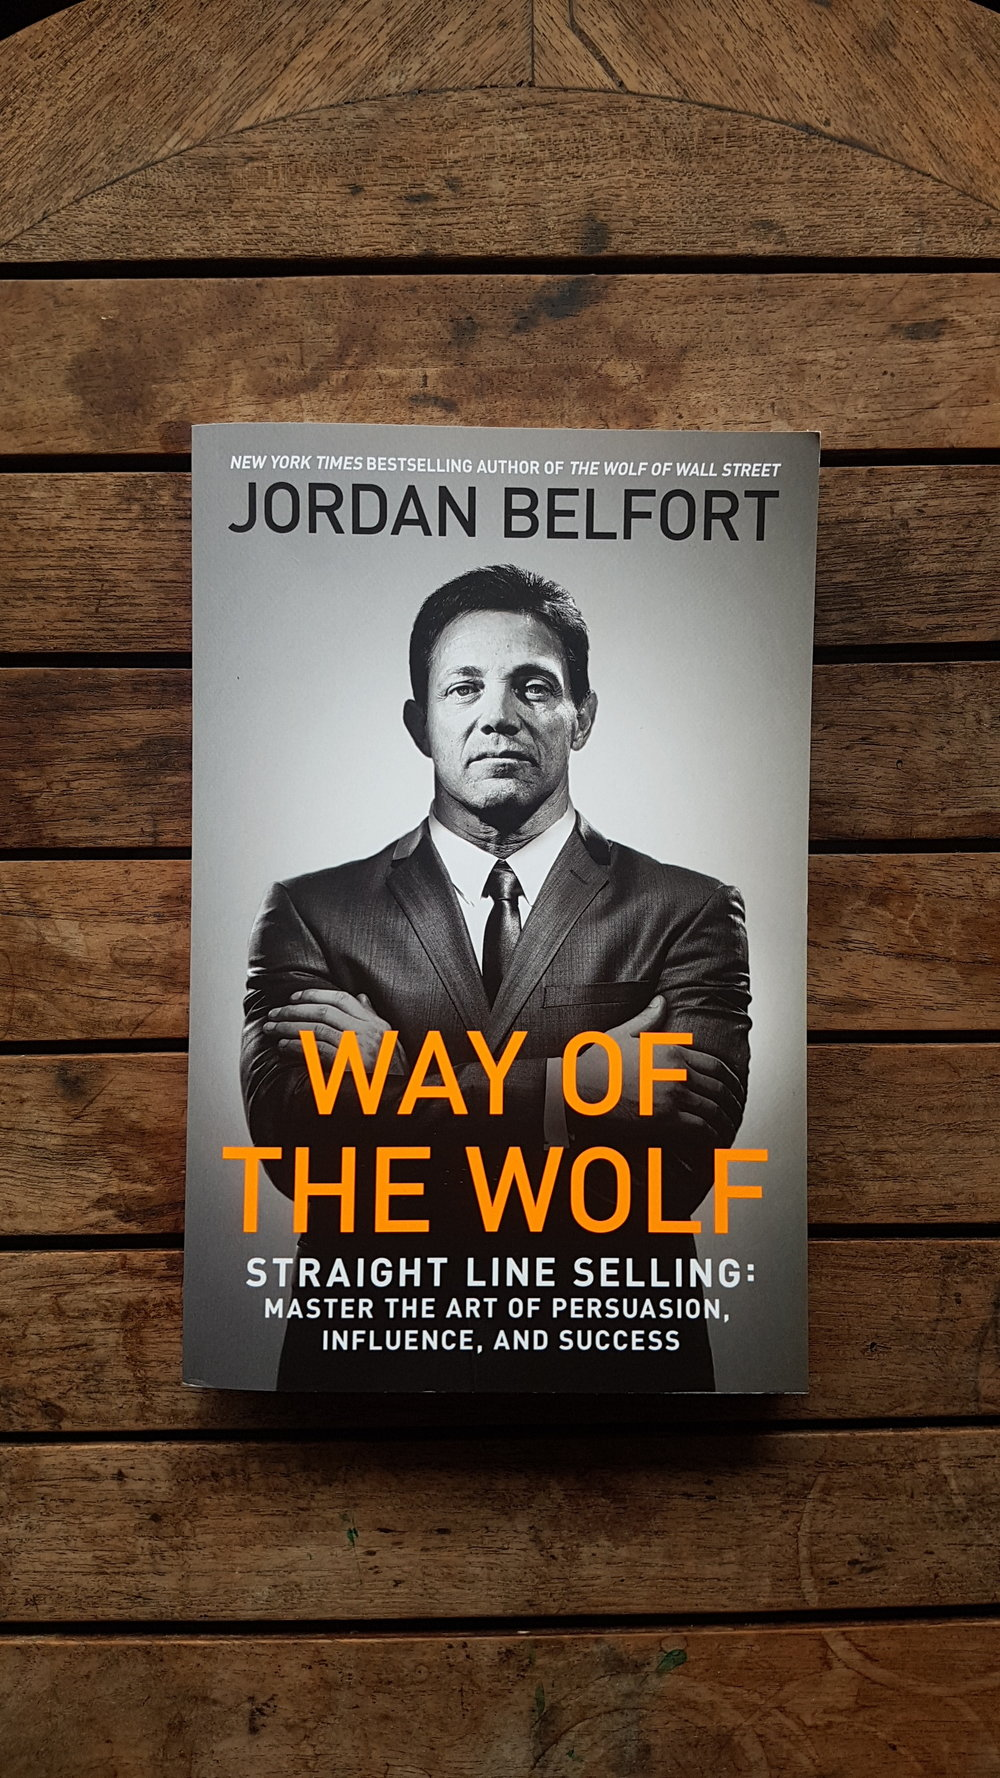 Way of the Wolf: Straight Line Selling: Master the Art of Persuasion, Influence, and Success   by Jordan Belfort